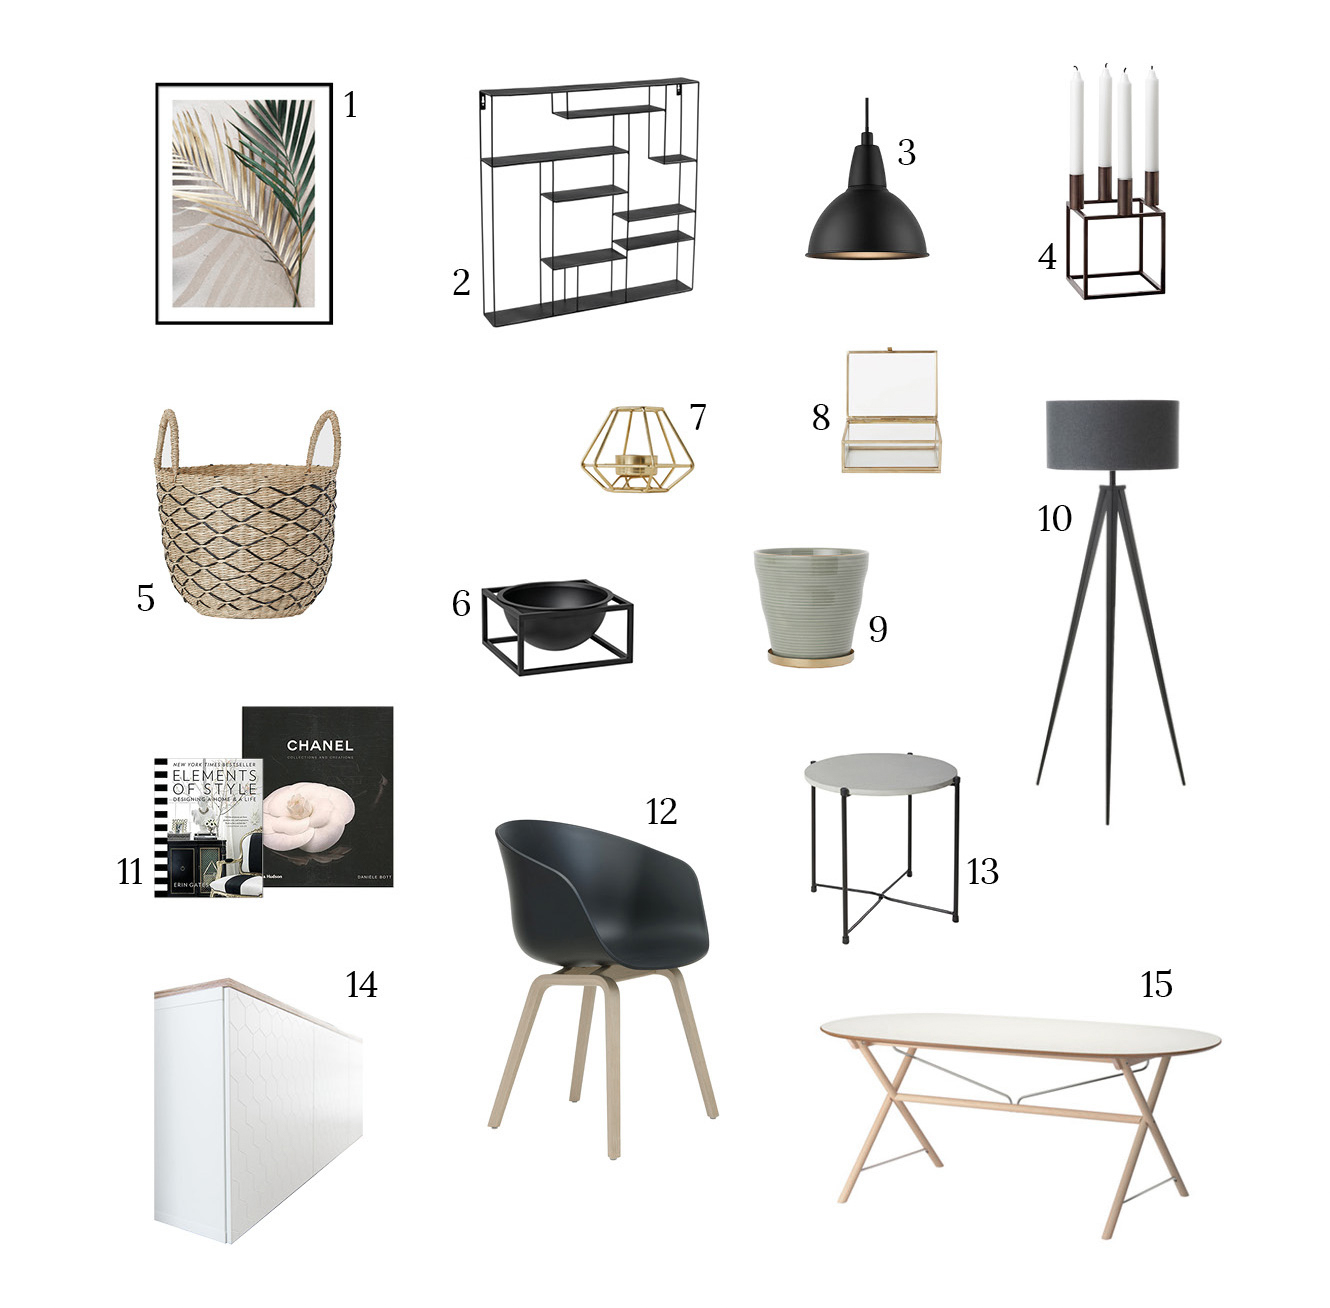 Esszimmer einrichten - Shop the Look